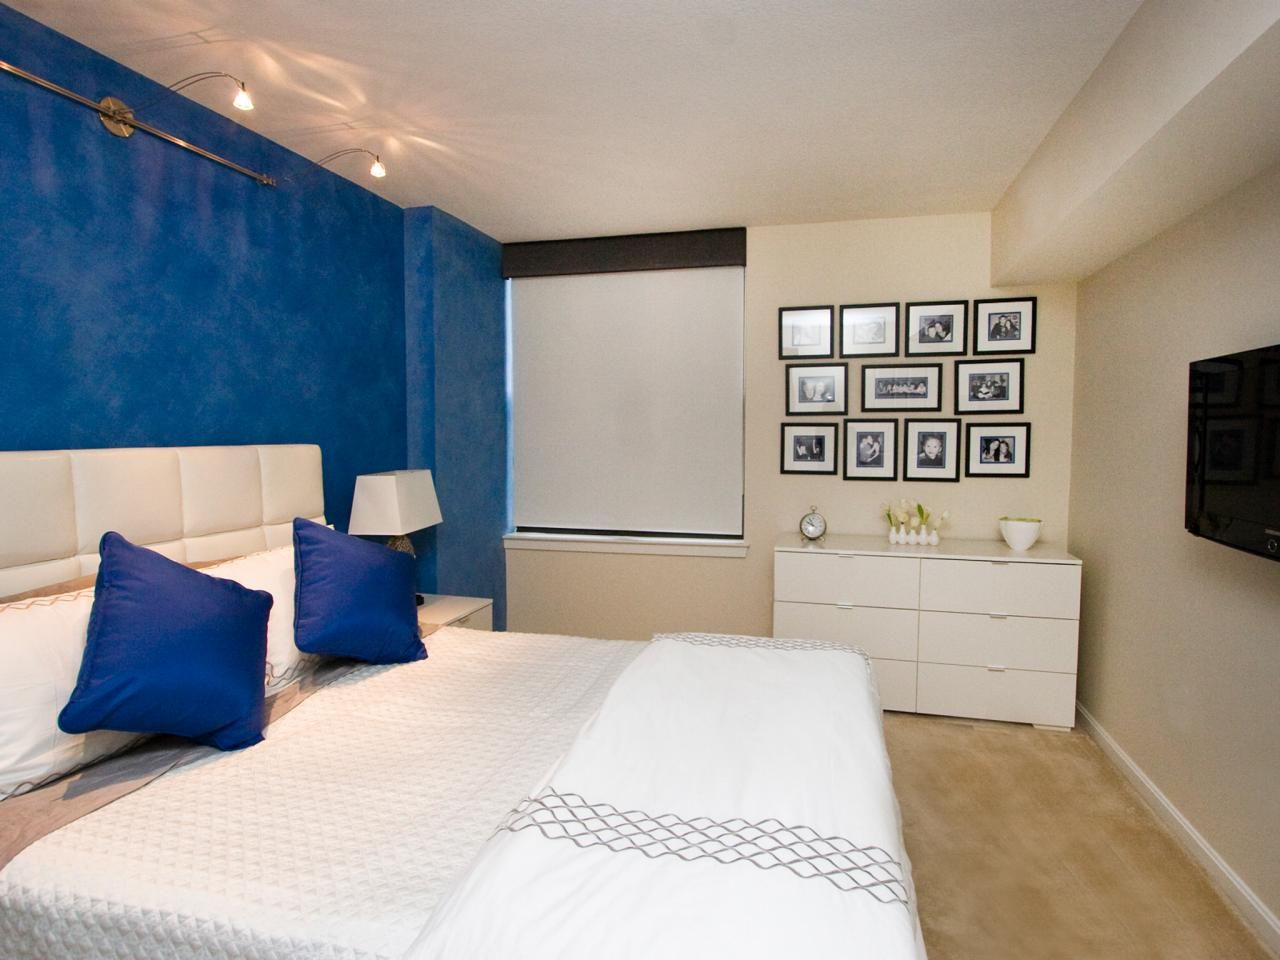 Blue And White Bedroom With Accent Wall And Framed Collage Art